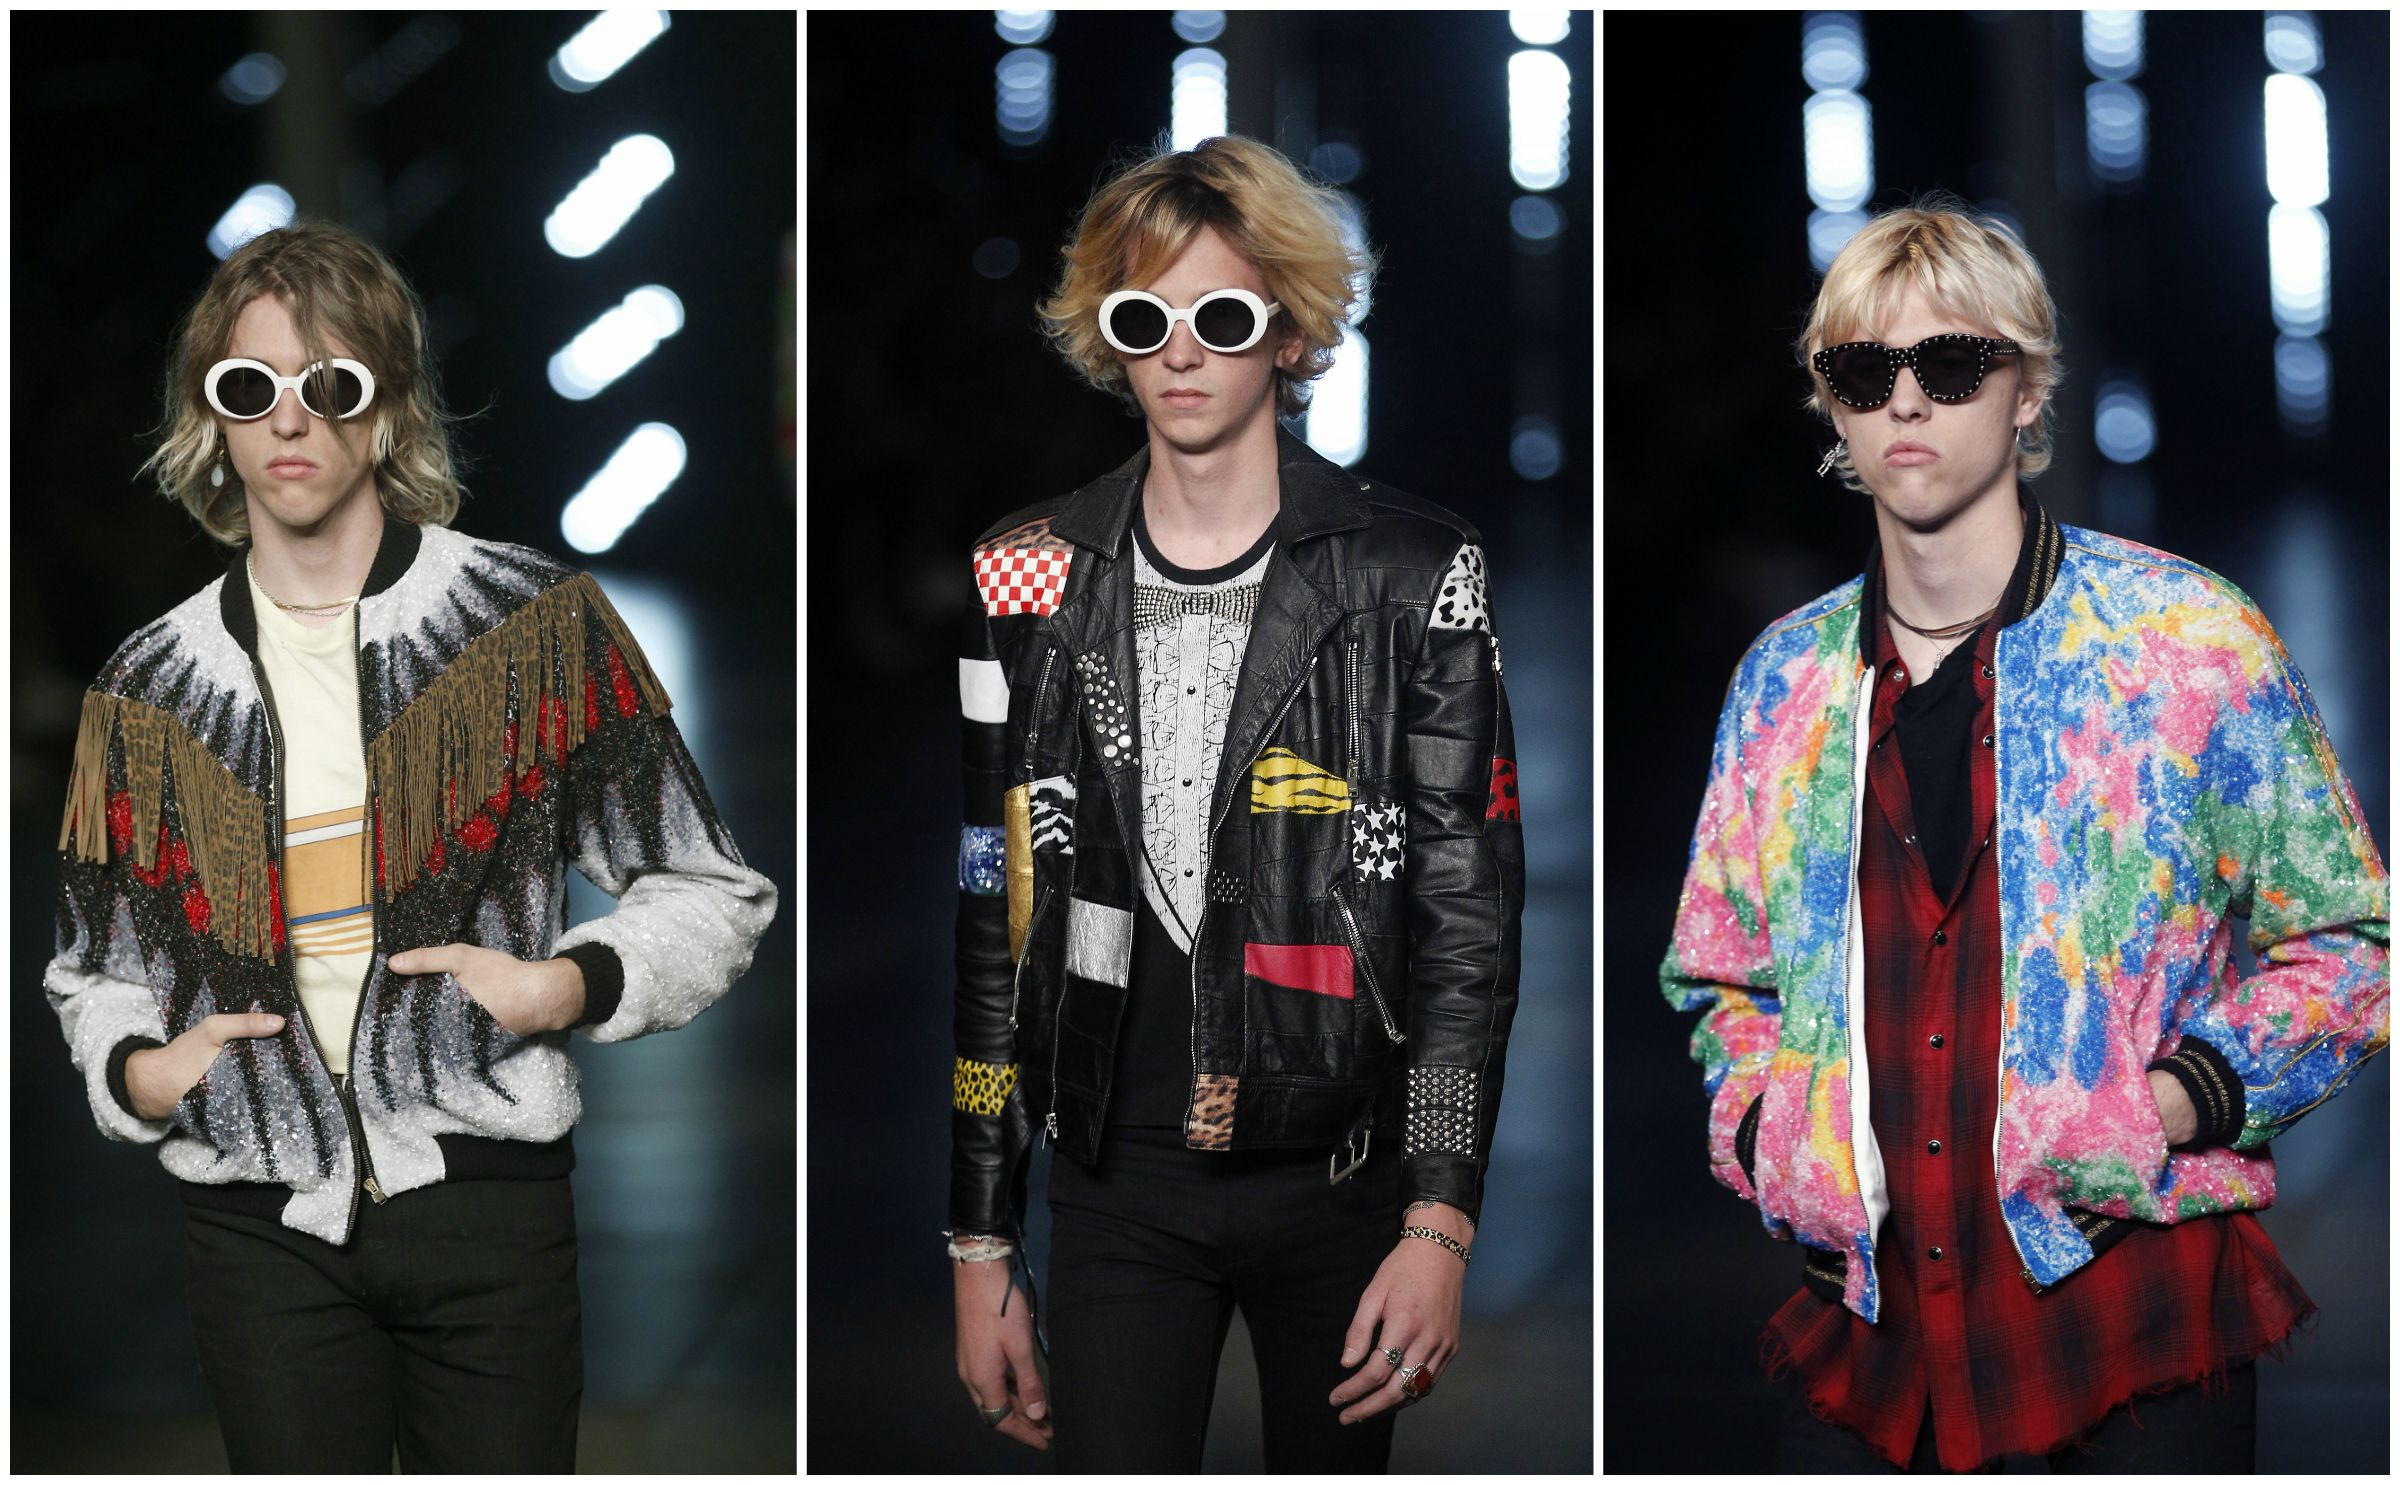 Models walk the runway during the Saint Laurent Menswear Spring/Summer 2016 show as part of Paris Fashion Week on June 28, 2015 in Paris, France.